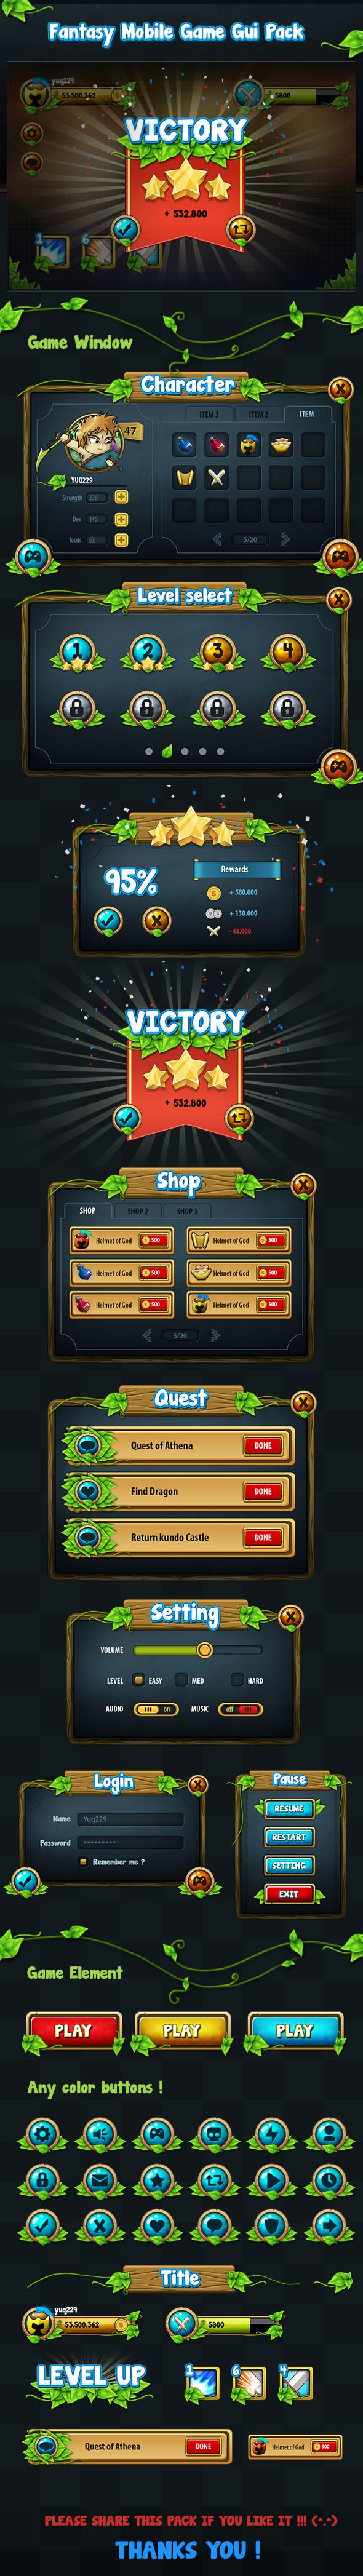 Fantasy Mobile Game Gui Pack 04 game user interface gui ui | Create your own roleplaying game material w/ RPG Bard: www.rpgbard.com | Writing inspiration for Dungeons and Dragons DND D&D Pathfinder PFRPG Warhammer 40k Star Wars Shadowrun Call of Cthulhu Lord of the Rings LoTR + d20 fantasy science fiction scifi horror design | Not Trusty Sword art: click artwork for source